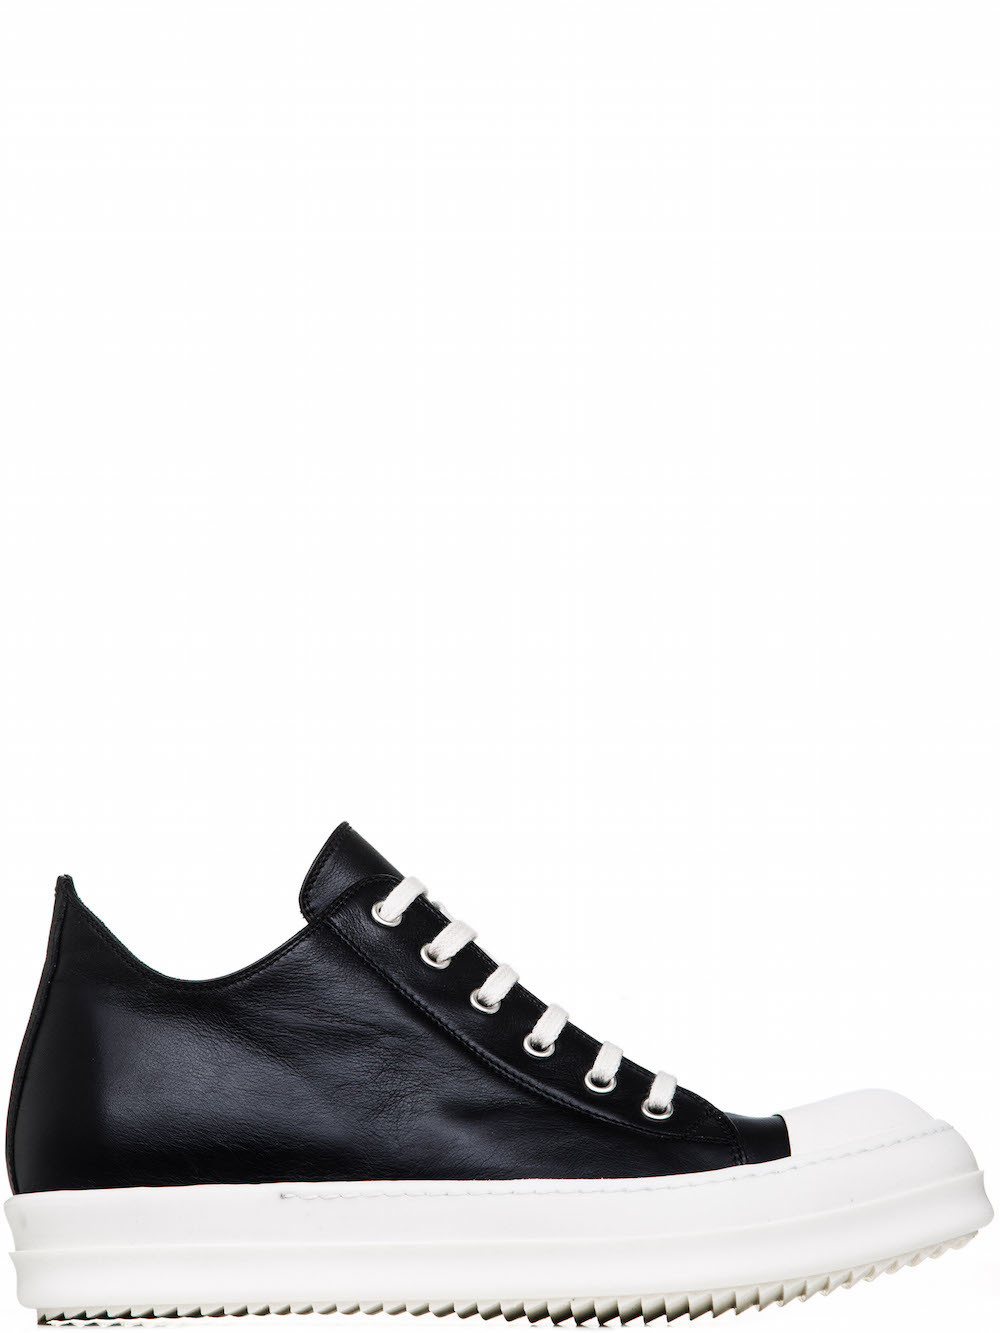 Rick Owens Sneakers with leather toe cap TwcMc